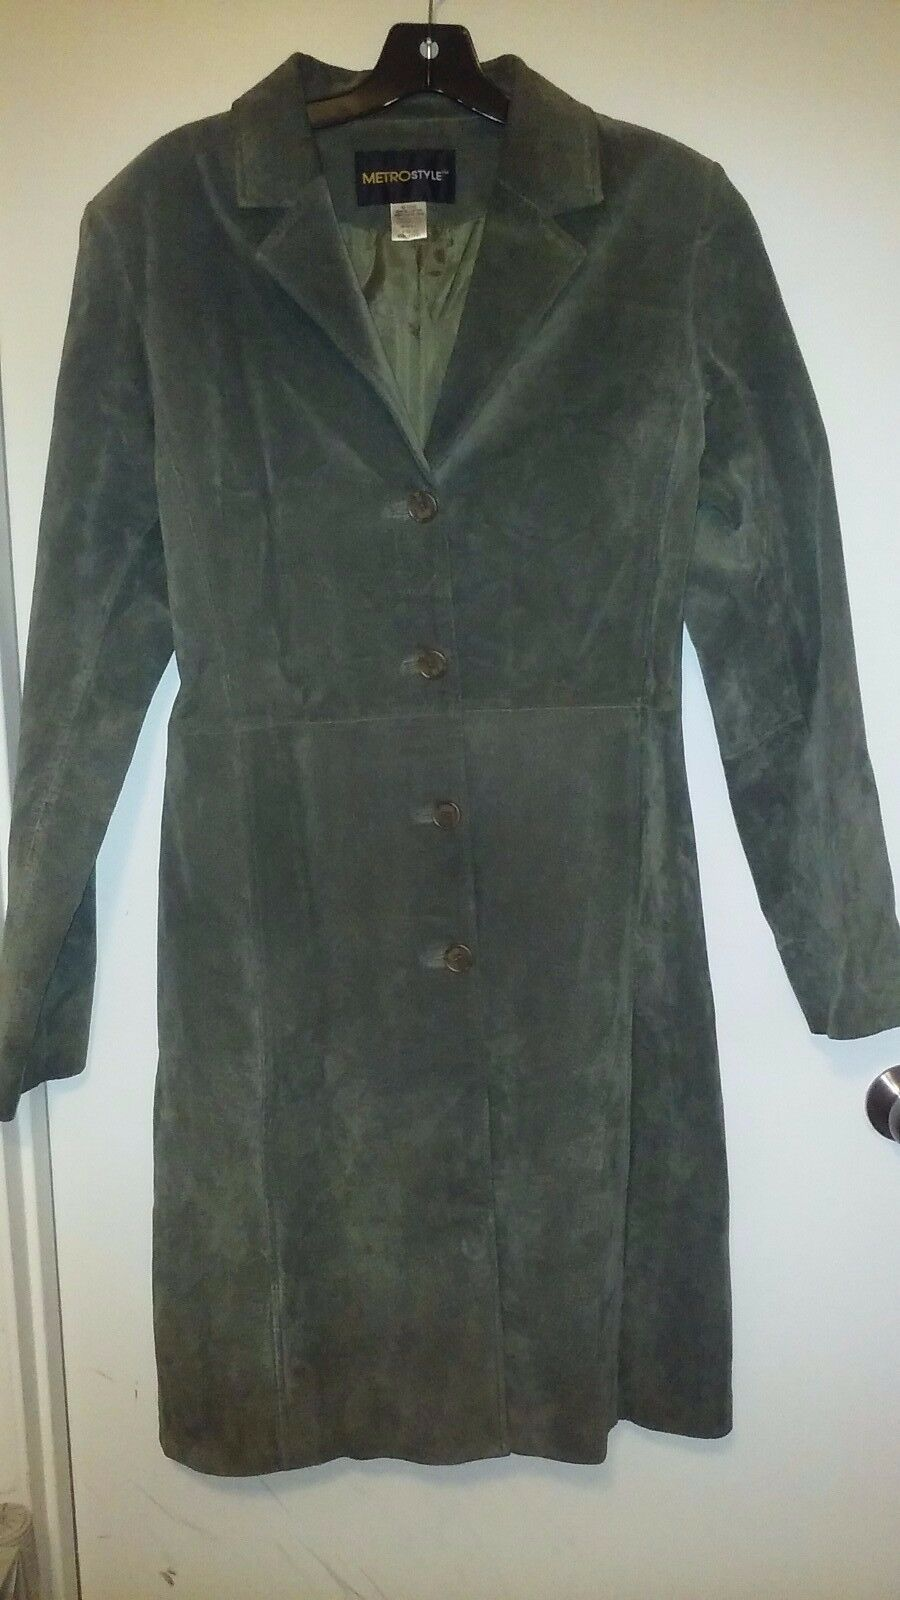 Suede Leather MetroStyle Olive Olive Olive Green Women's Size 8T coat 6c4565